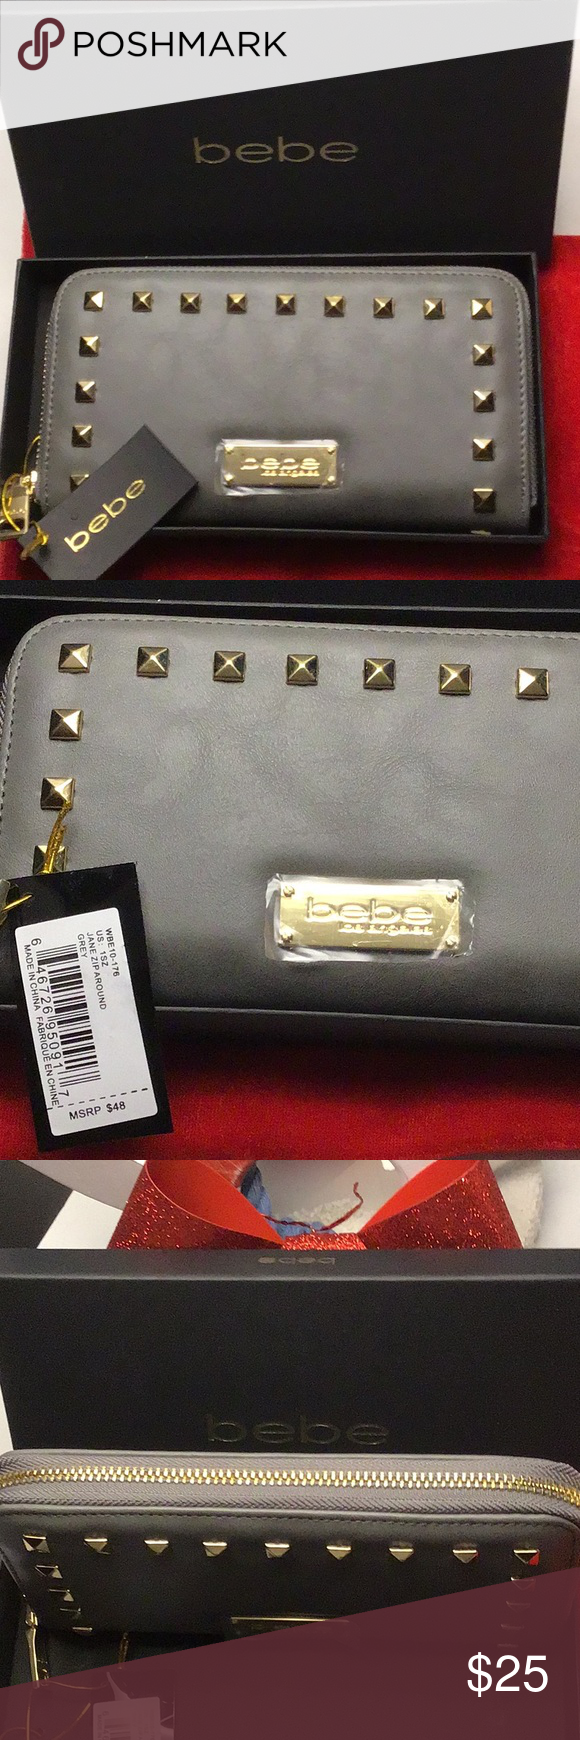 """6516b05854 Brand New """"bebe"""" Grey Jane Zip Around Wallet Brand new with tags & come  with box. Gold tone hardware and studs. Middle inside zippered compartment  with ..."""